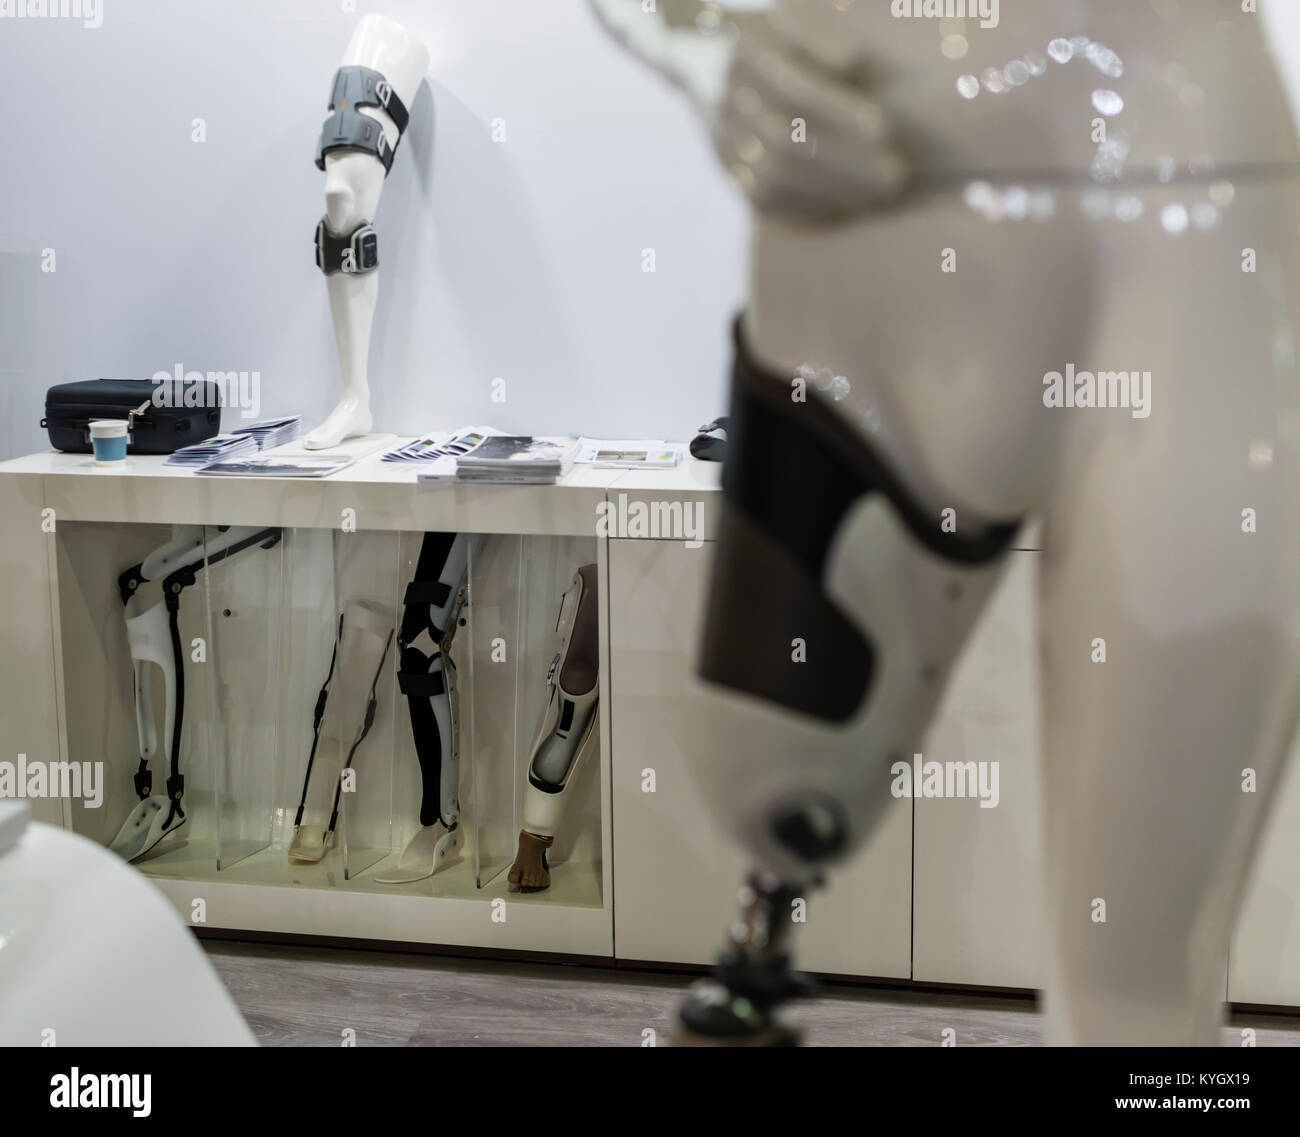 Lucerne, Switzerland - 2 Dec 2017: A variety of leg braces and prostheses shown at an exhibition booth during Swiss - Stock Image